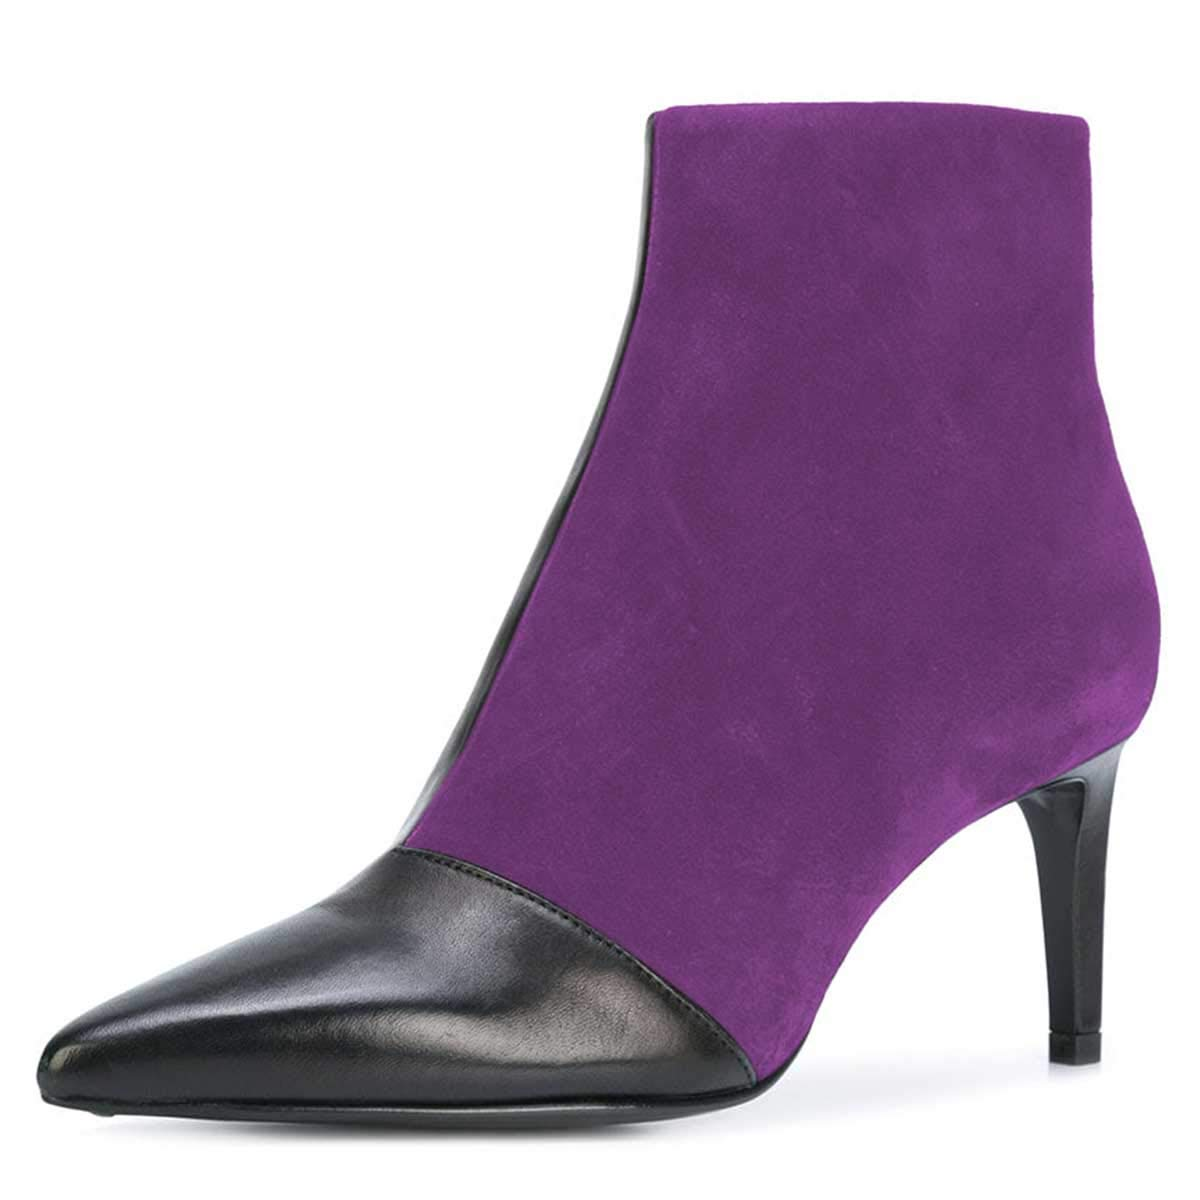 FSJ Women Fashion Pointed Toe Ankle Booties Mid High Heels Office Lady Comfy Dress Shoes Size 8.5 Purple